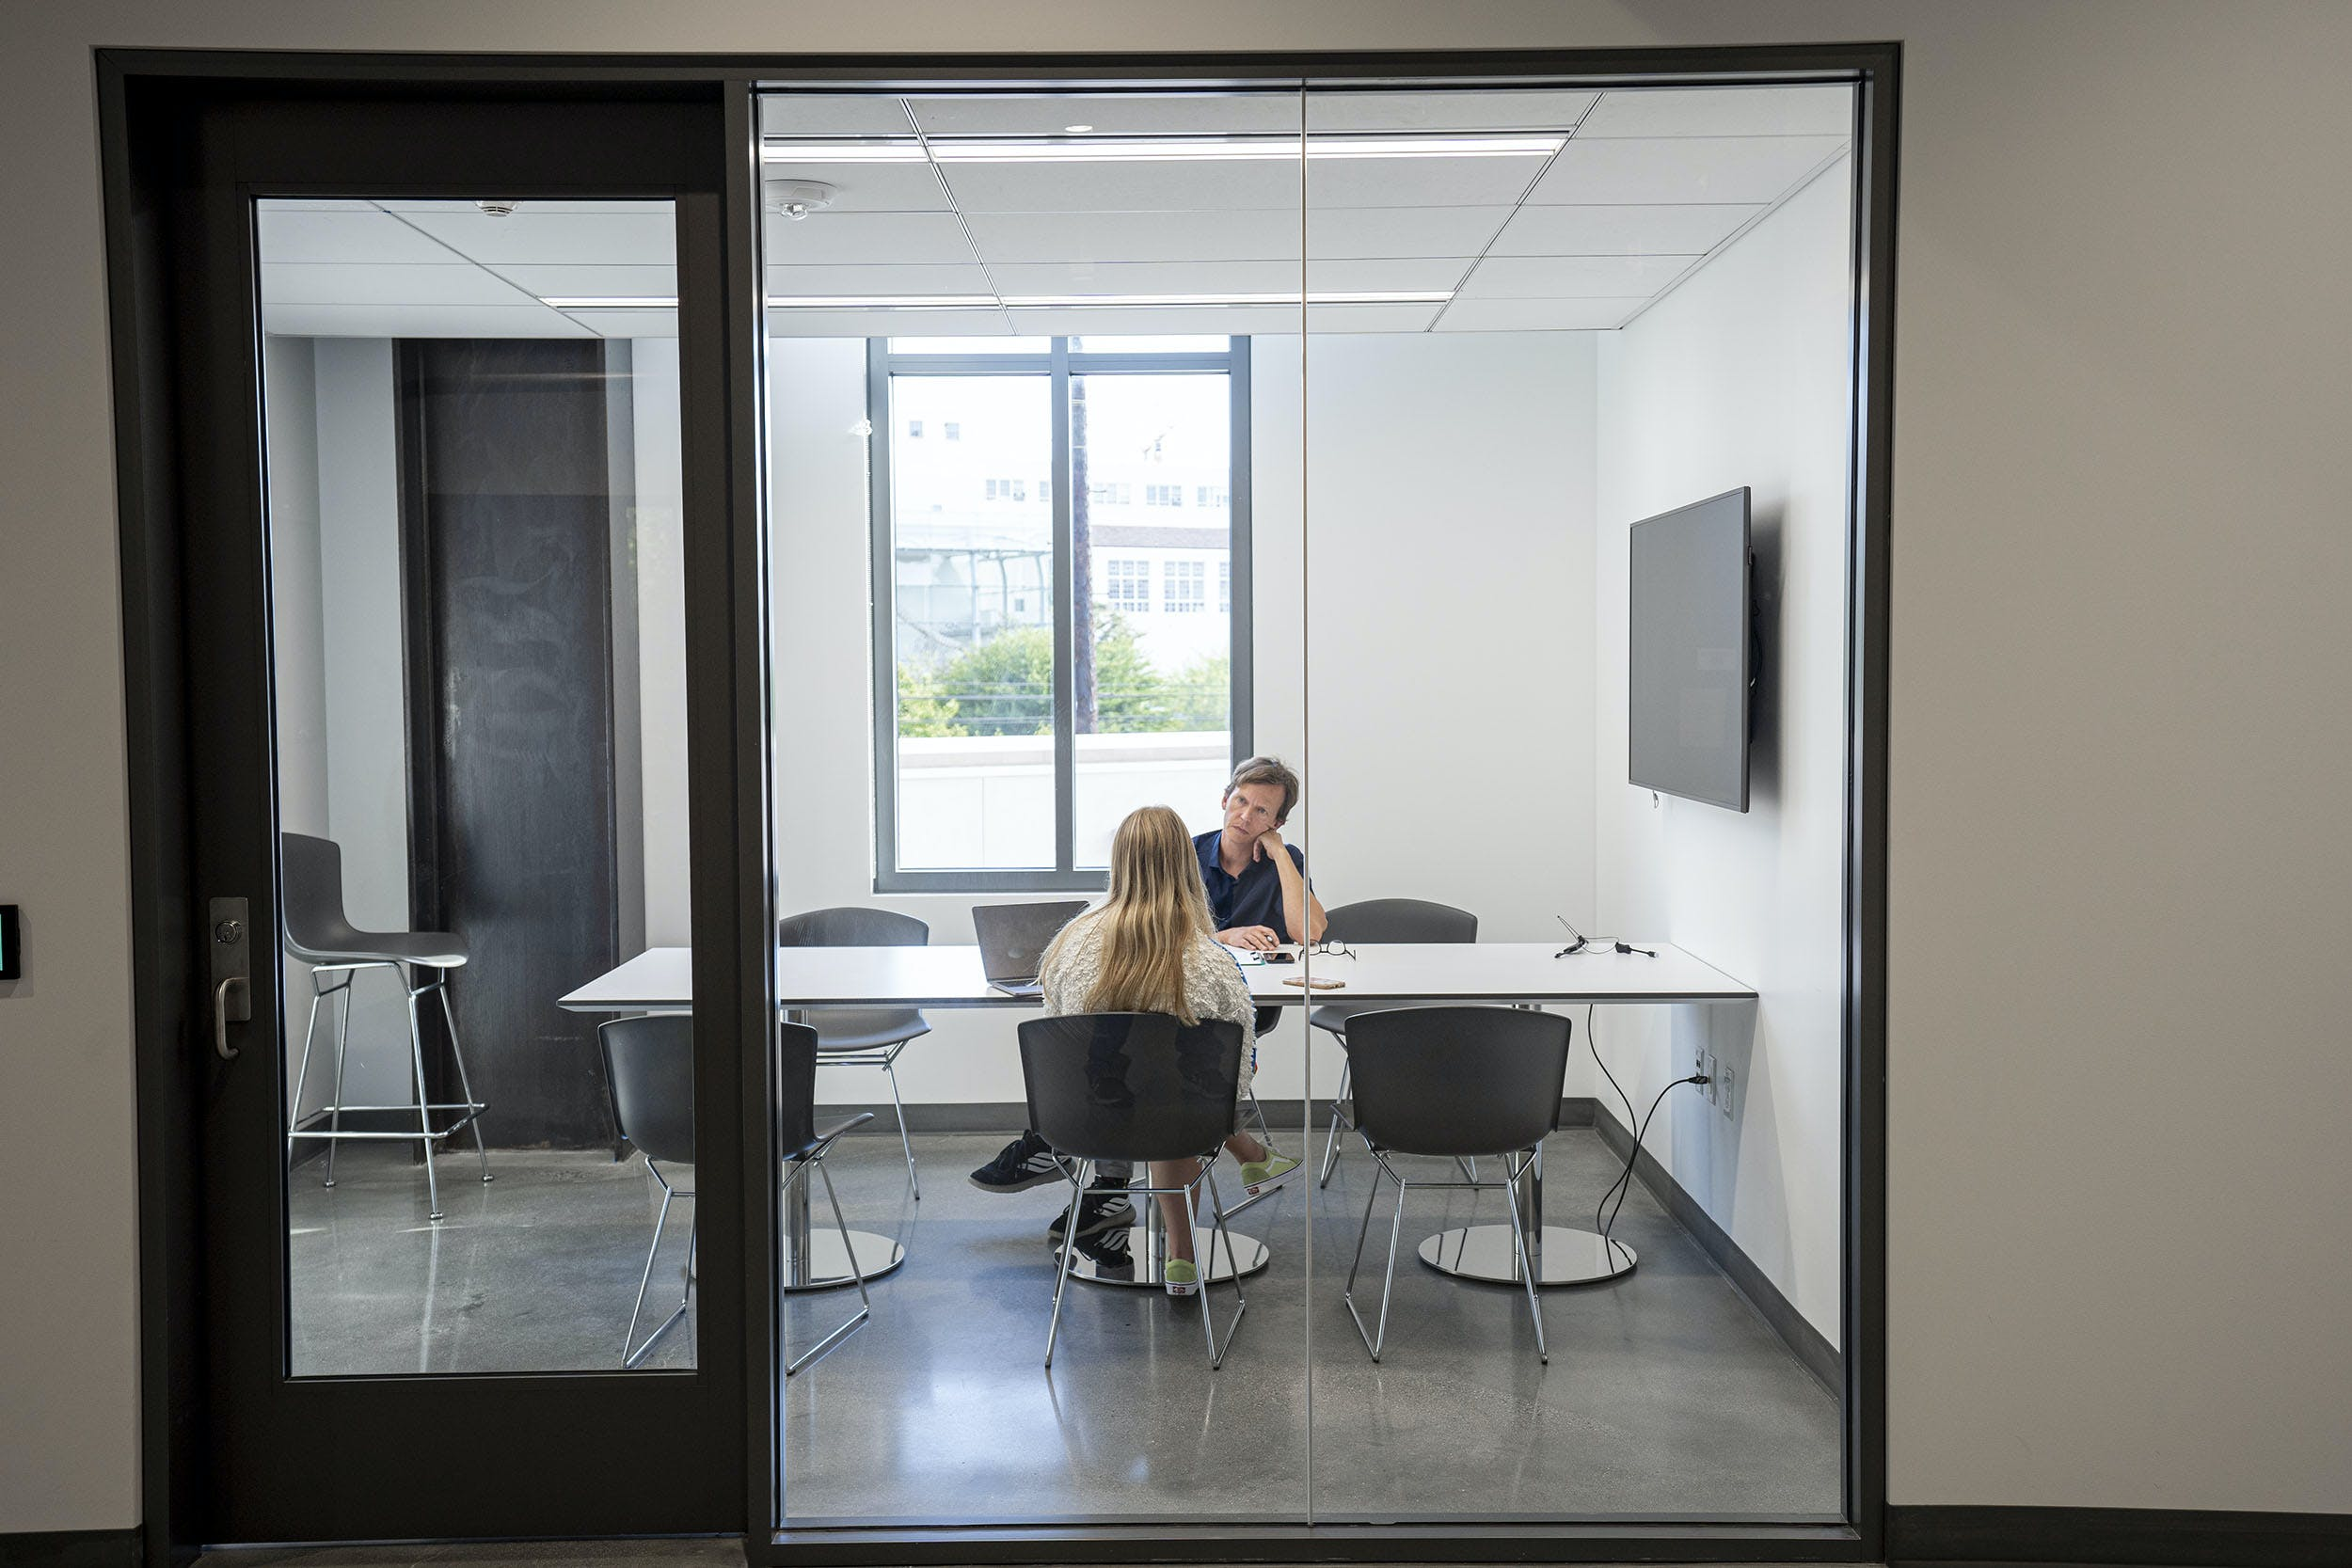 A student meets with a teacher in a conference room